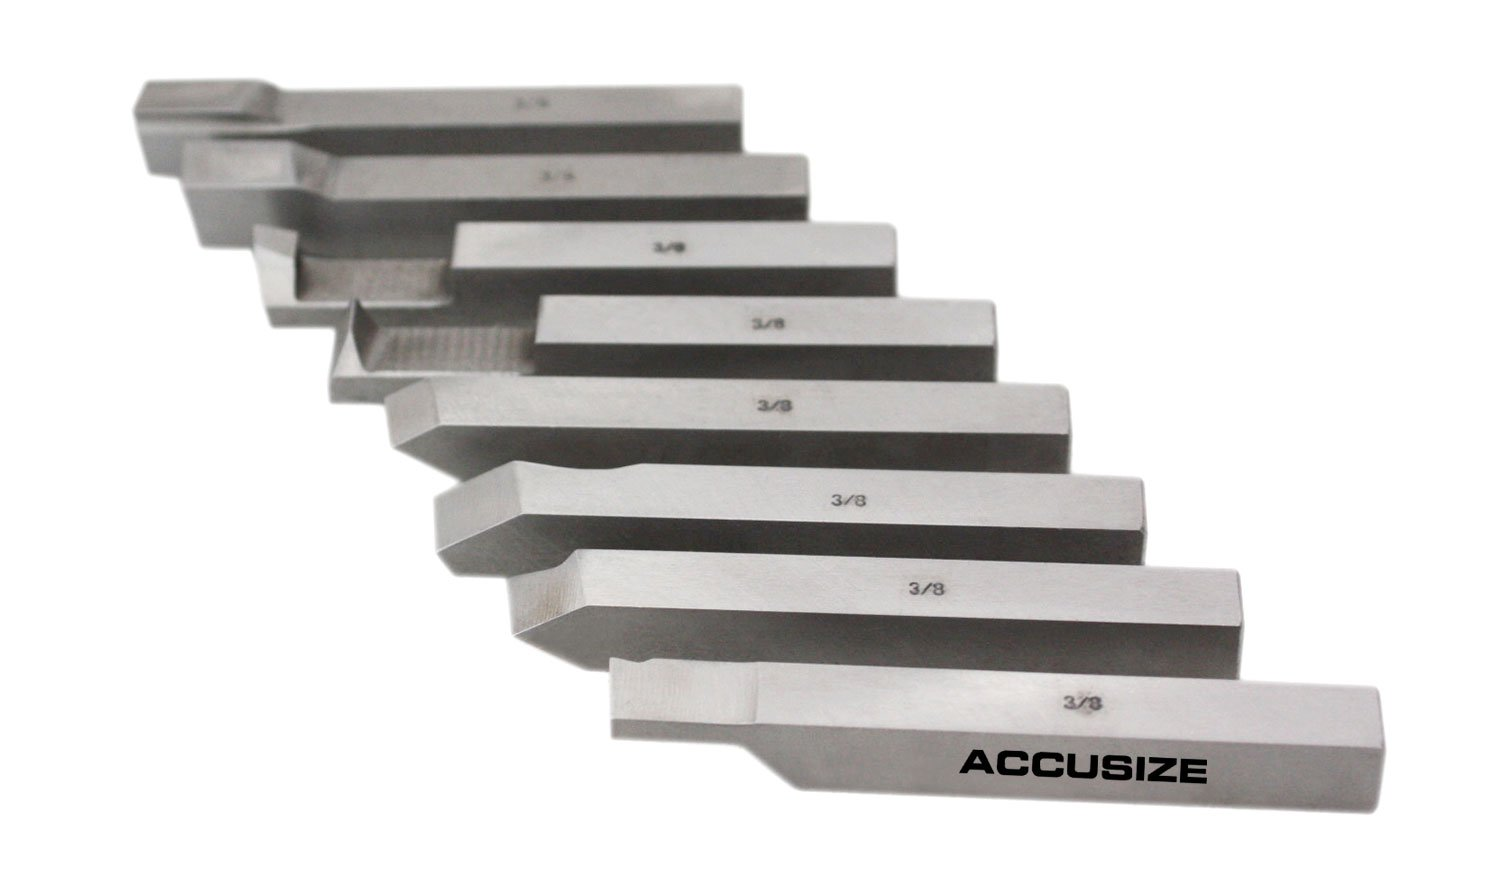 AccusizeTools - 3/8 inch 8 pcs H.S.S. Tool Bit Set, Pre-Ground for Turning & Facing Work, for Aluminum.Steel, Brass, Plastic & Wood, 2662-2003